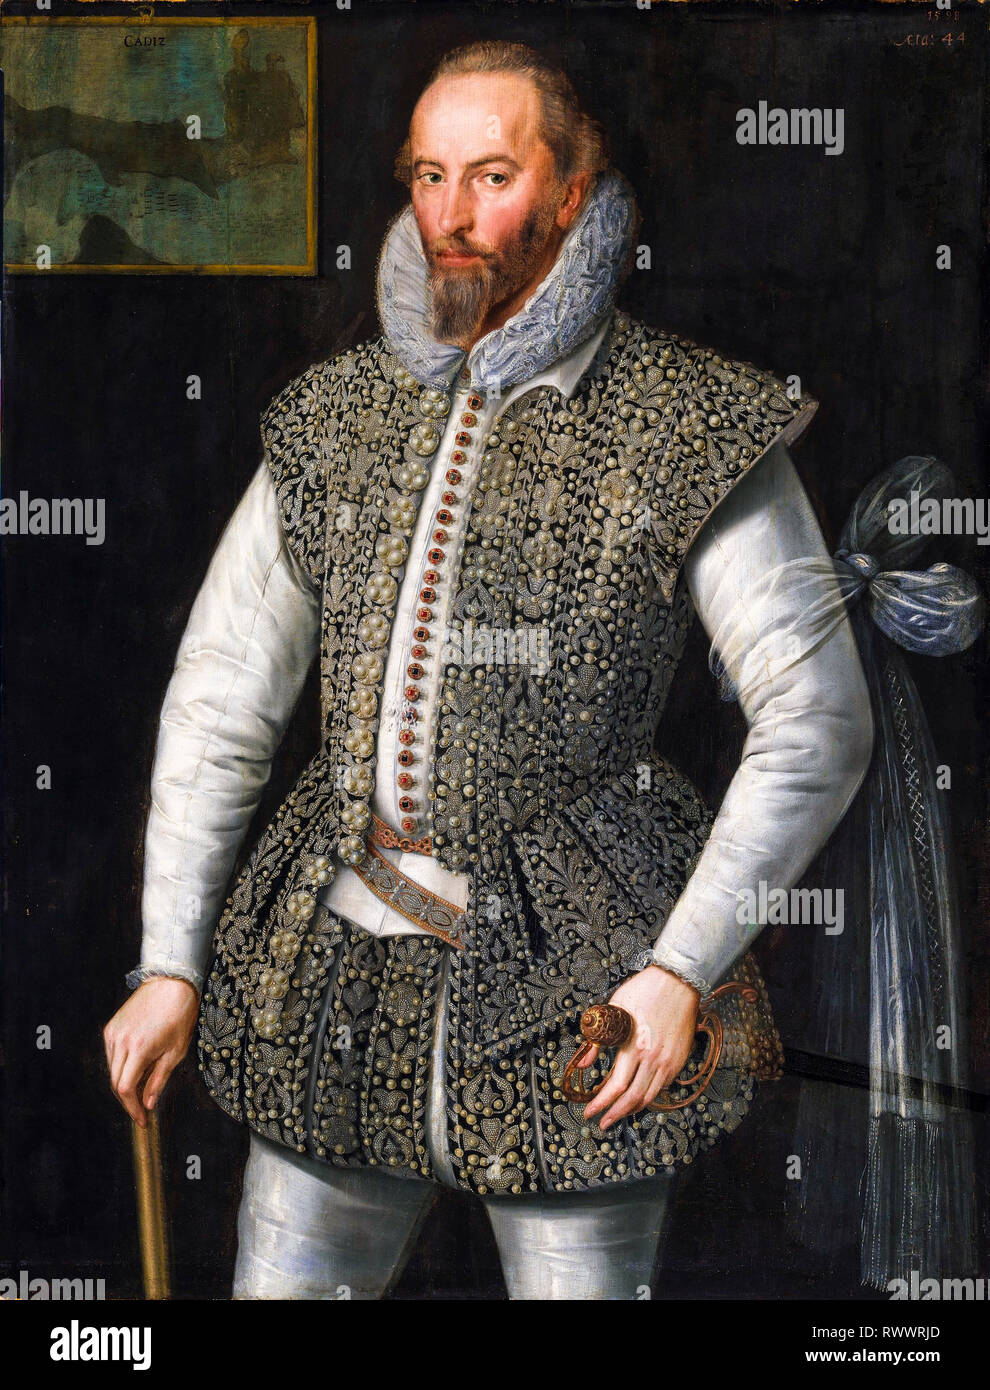 Sir Walter Raleigh (c. 1552-1618), portrait painting, 1598, William Segar - Stock Image